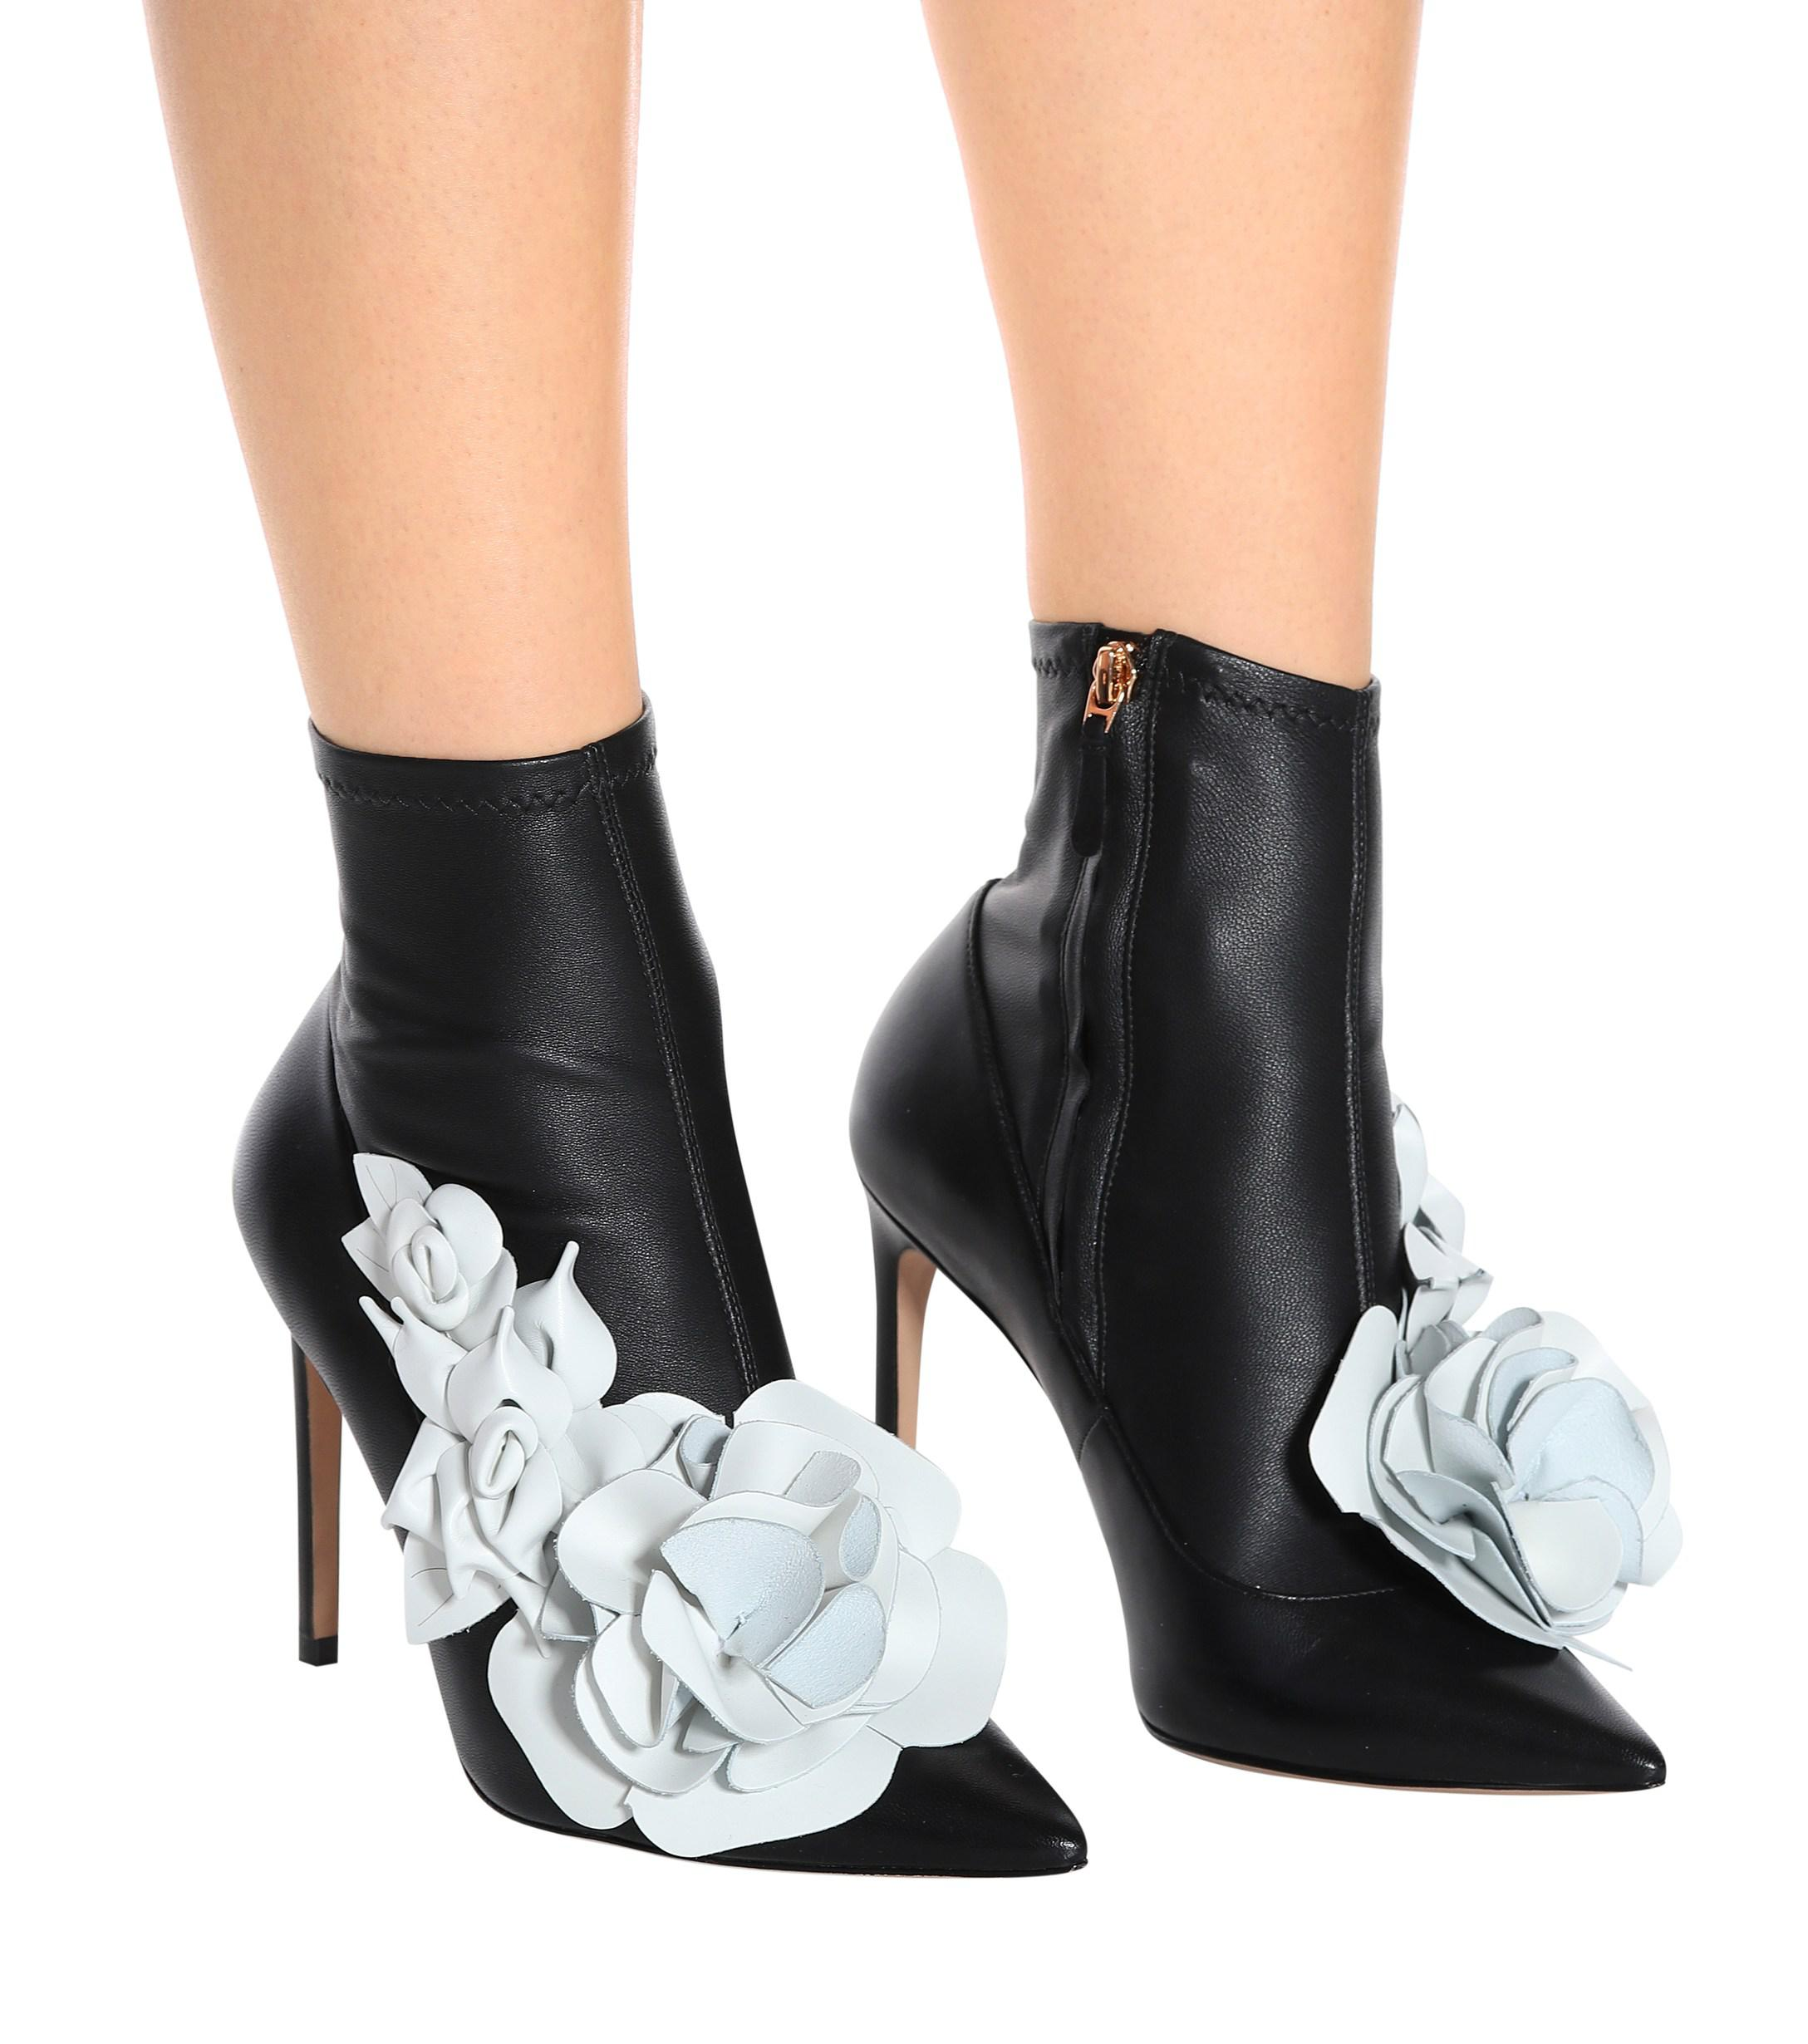 c8f9b53474e5 Lyst - Sophia Webster Lilico 100 Boots in Black - Save 52%